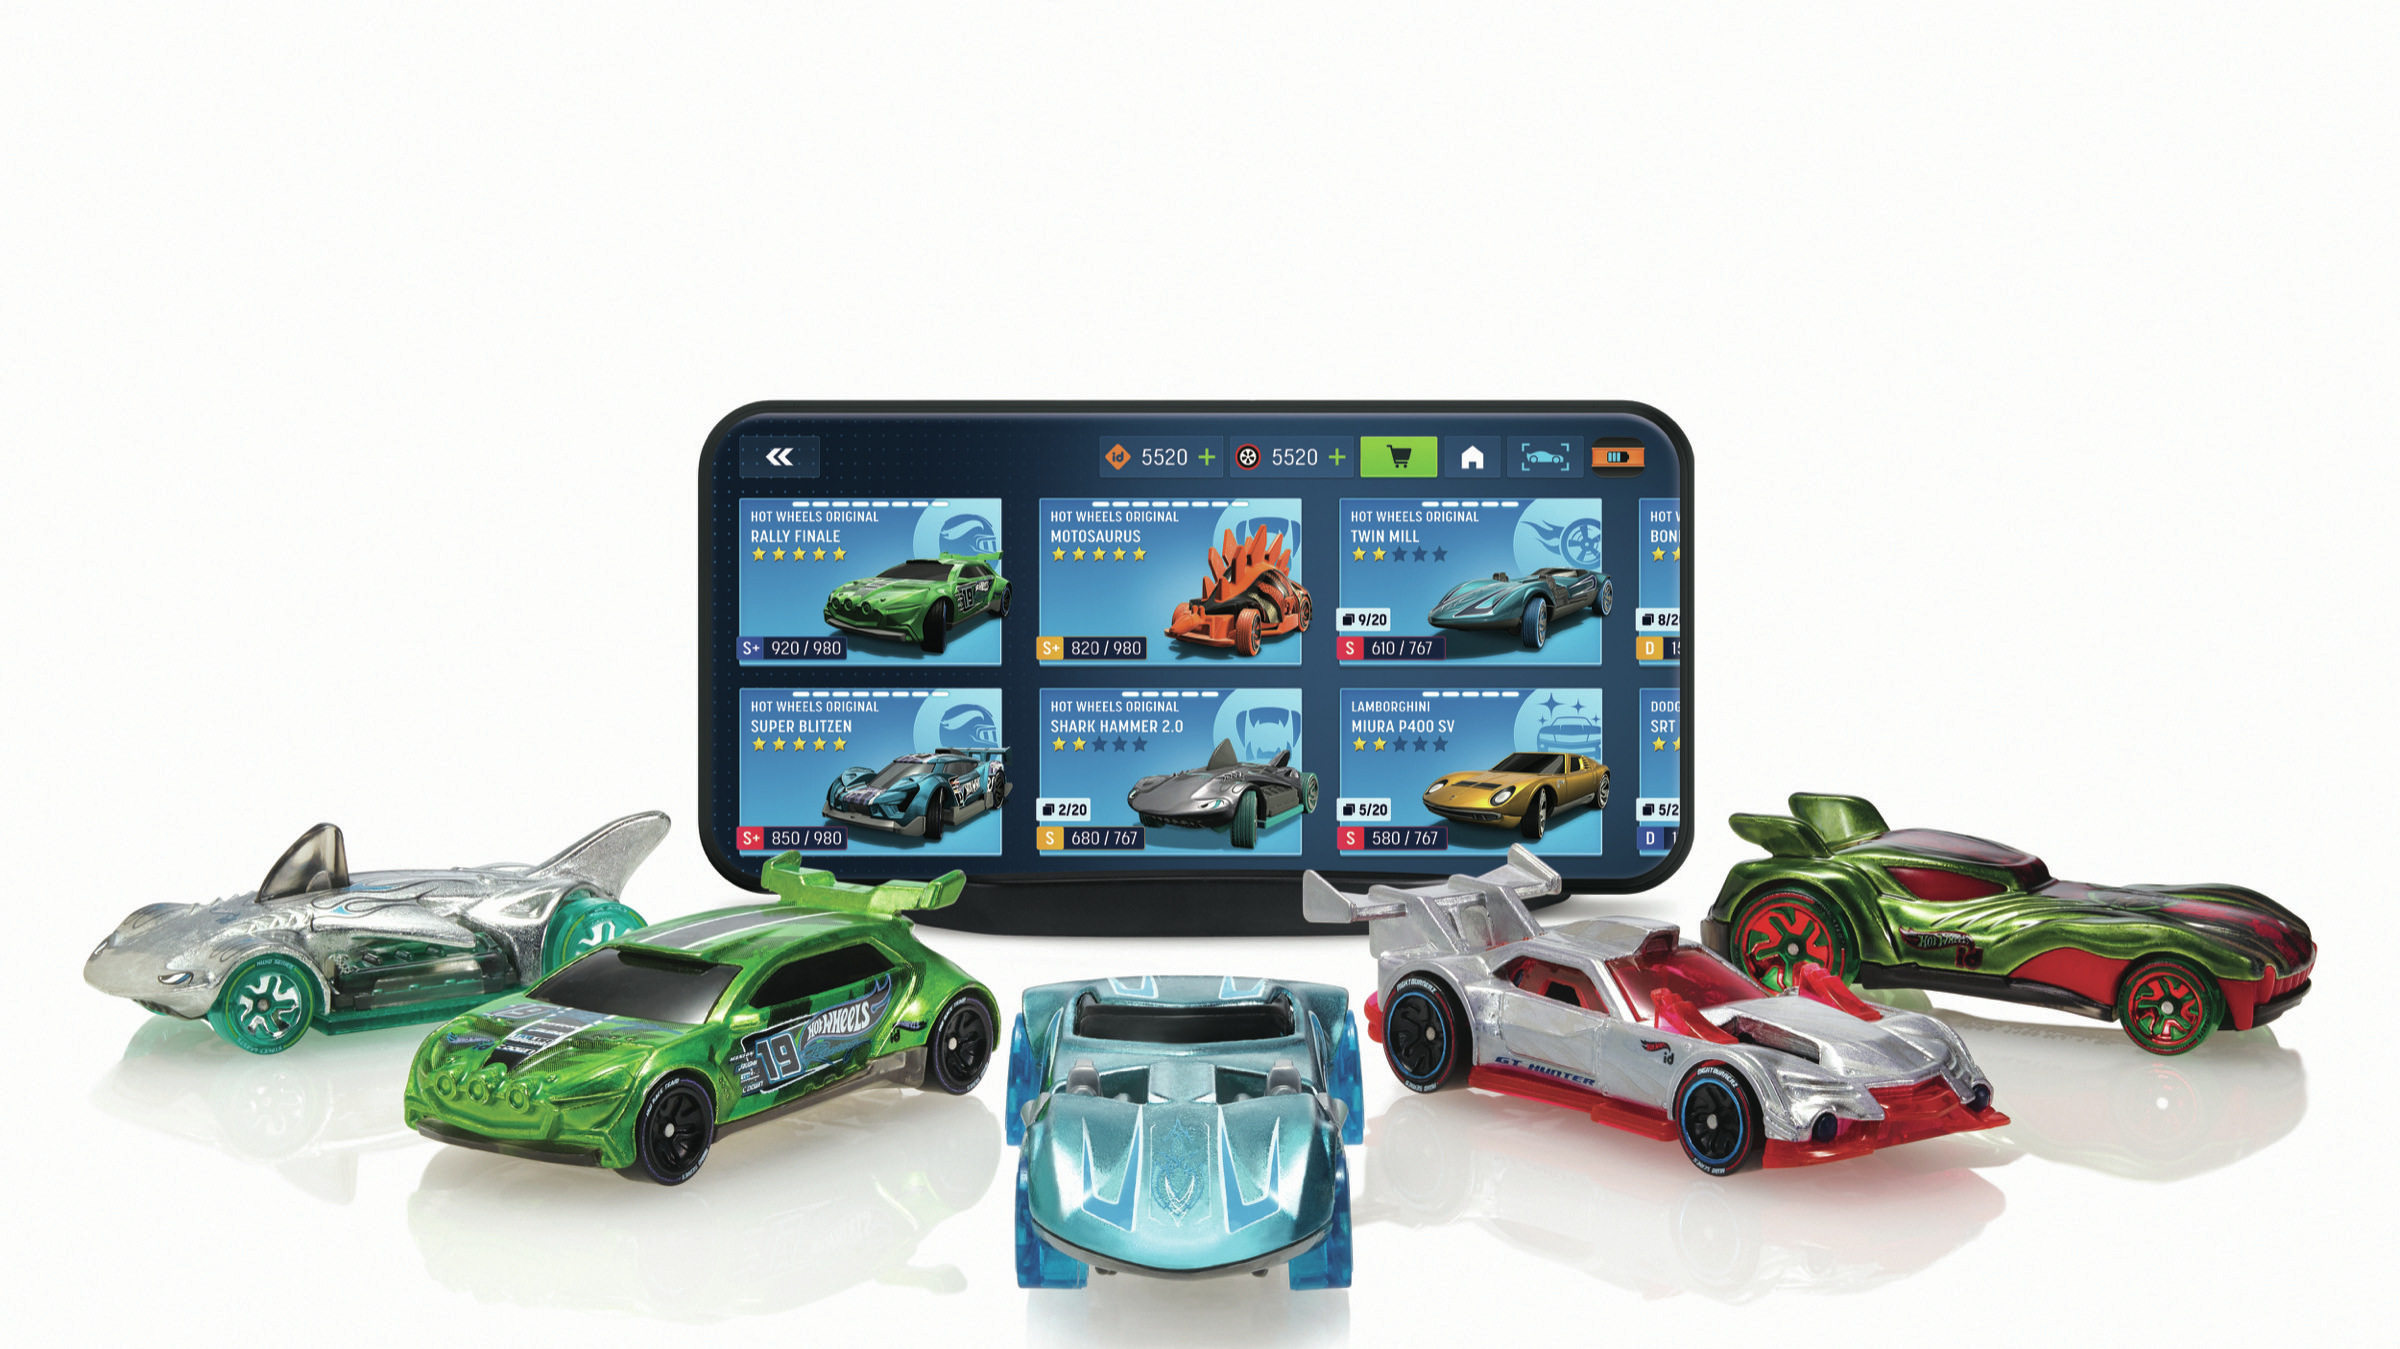 Hot Wheels launches 'id' high-tech toy cars with smart track